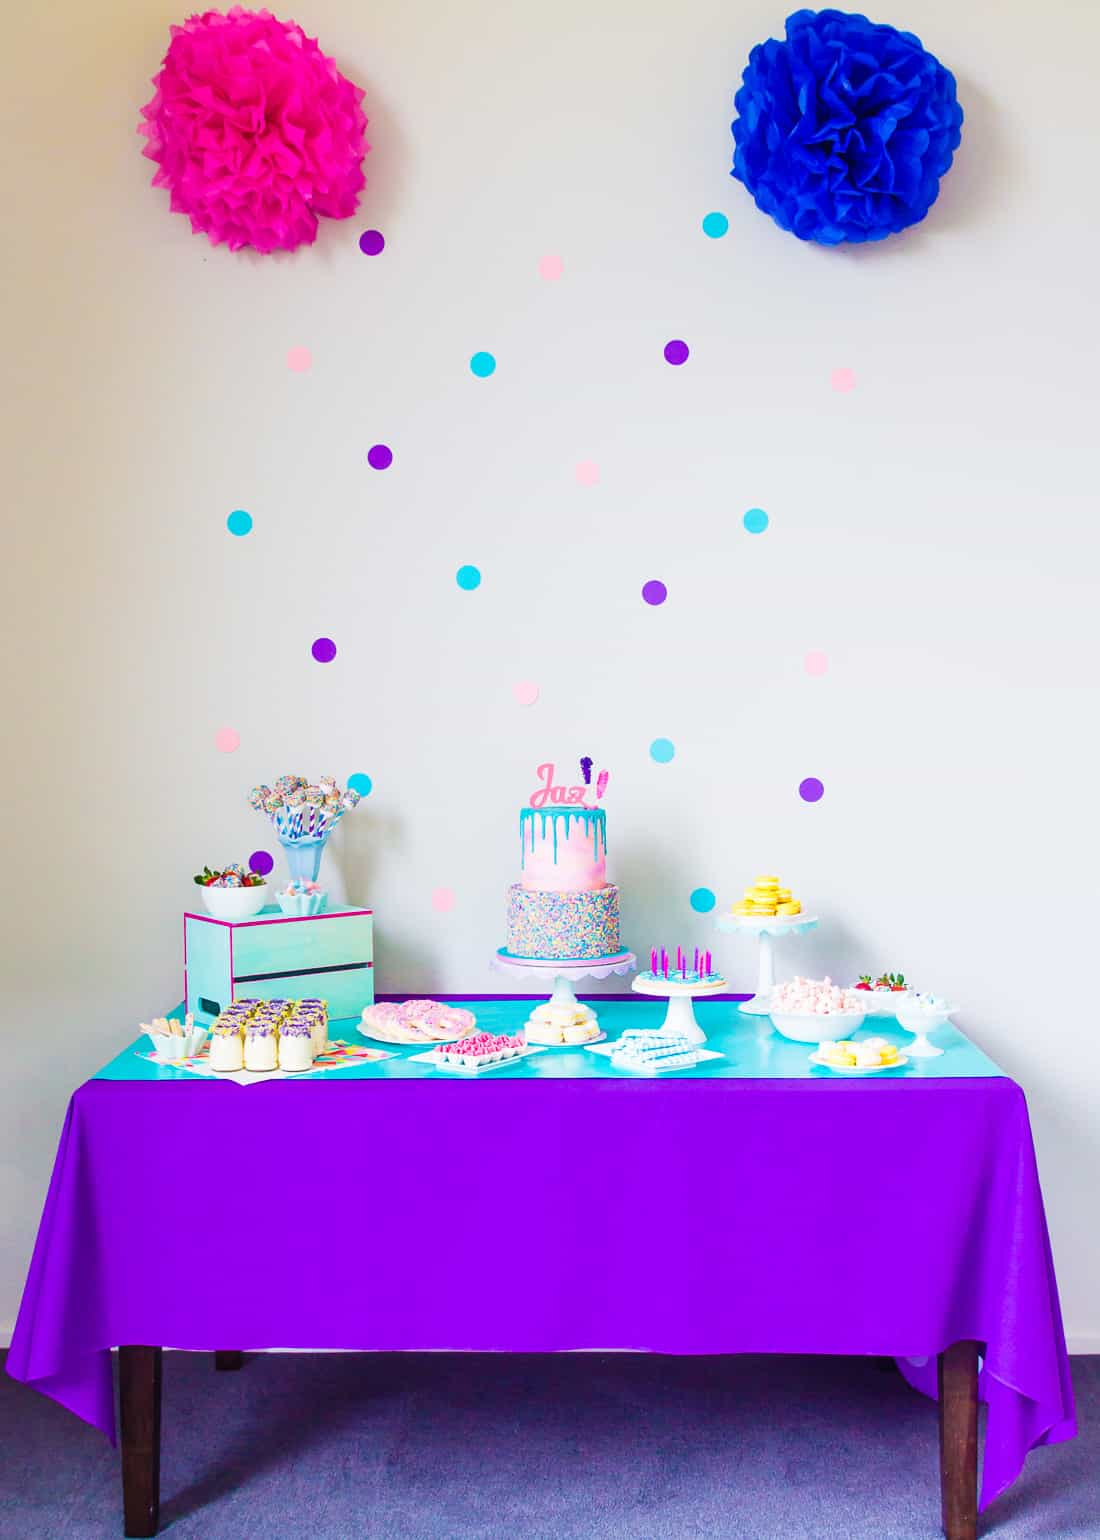 Tumblr-inspired Sprinkle Party Table